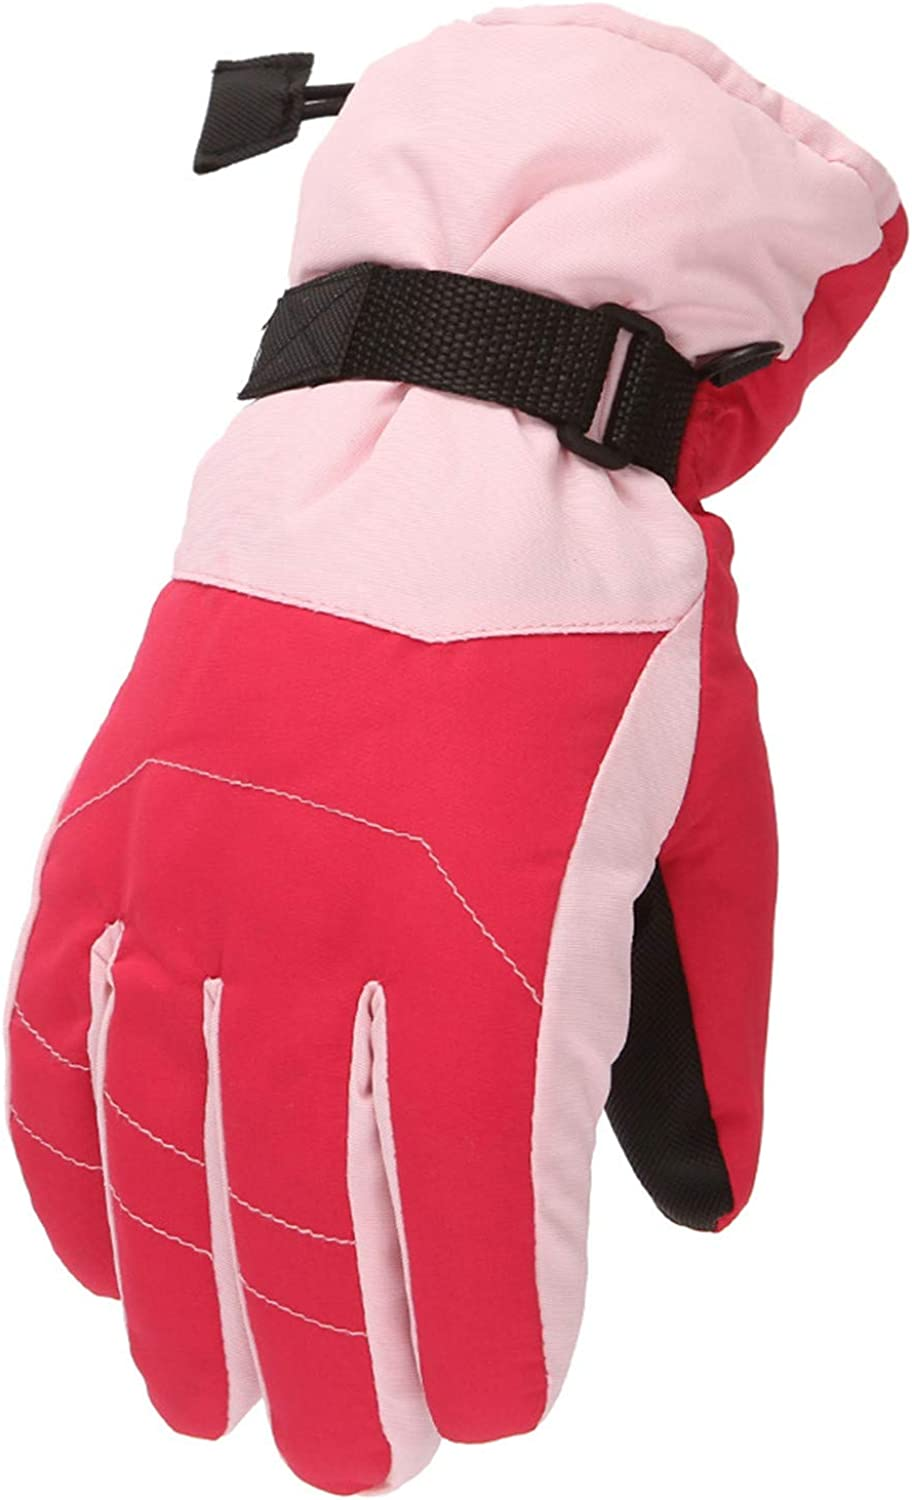 Winter Gloves Boys Girls Cold Weather Waterproof Snow Gloves with Wrist Leashes